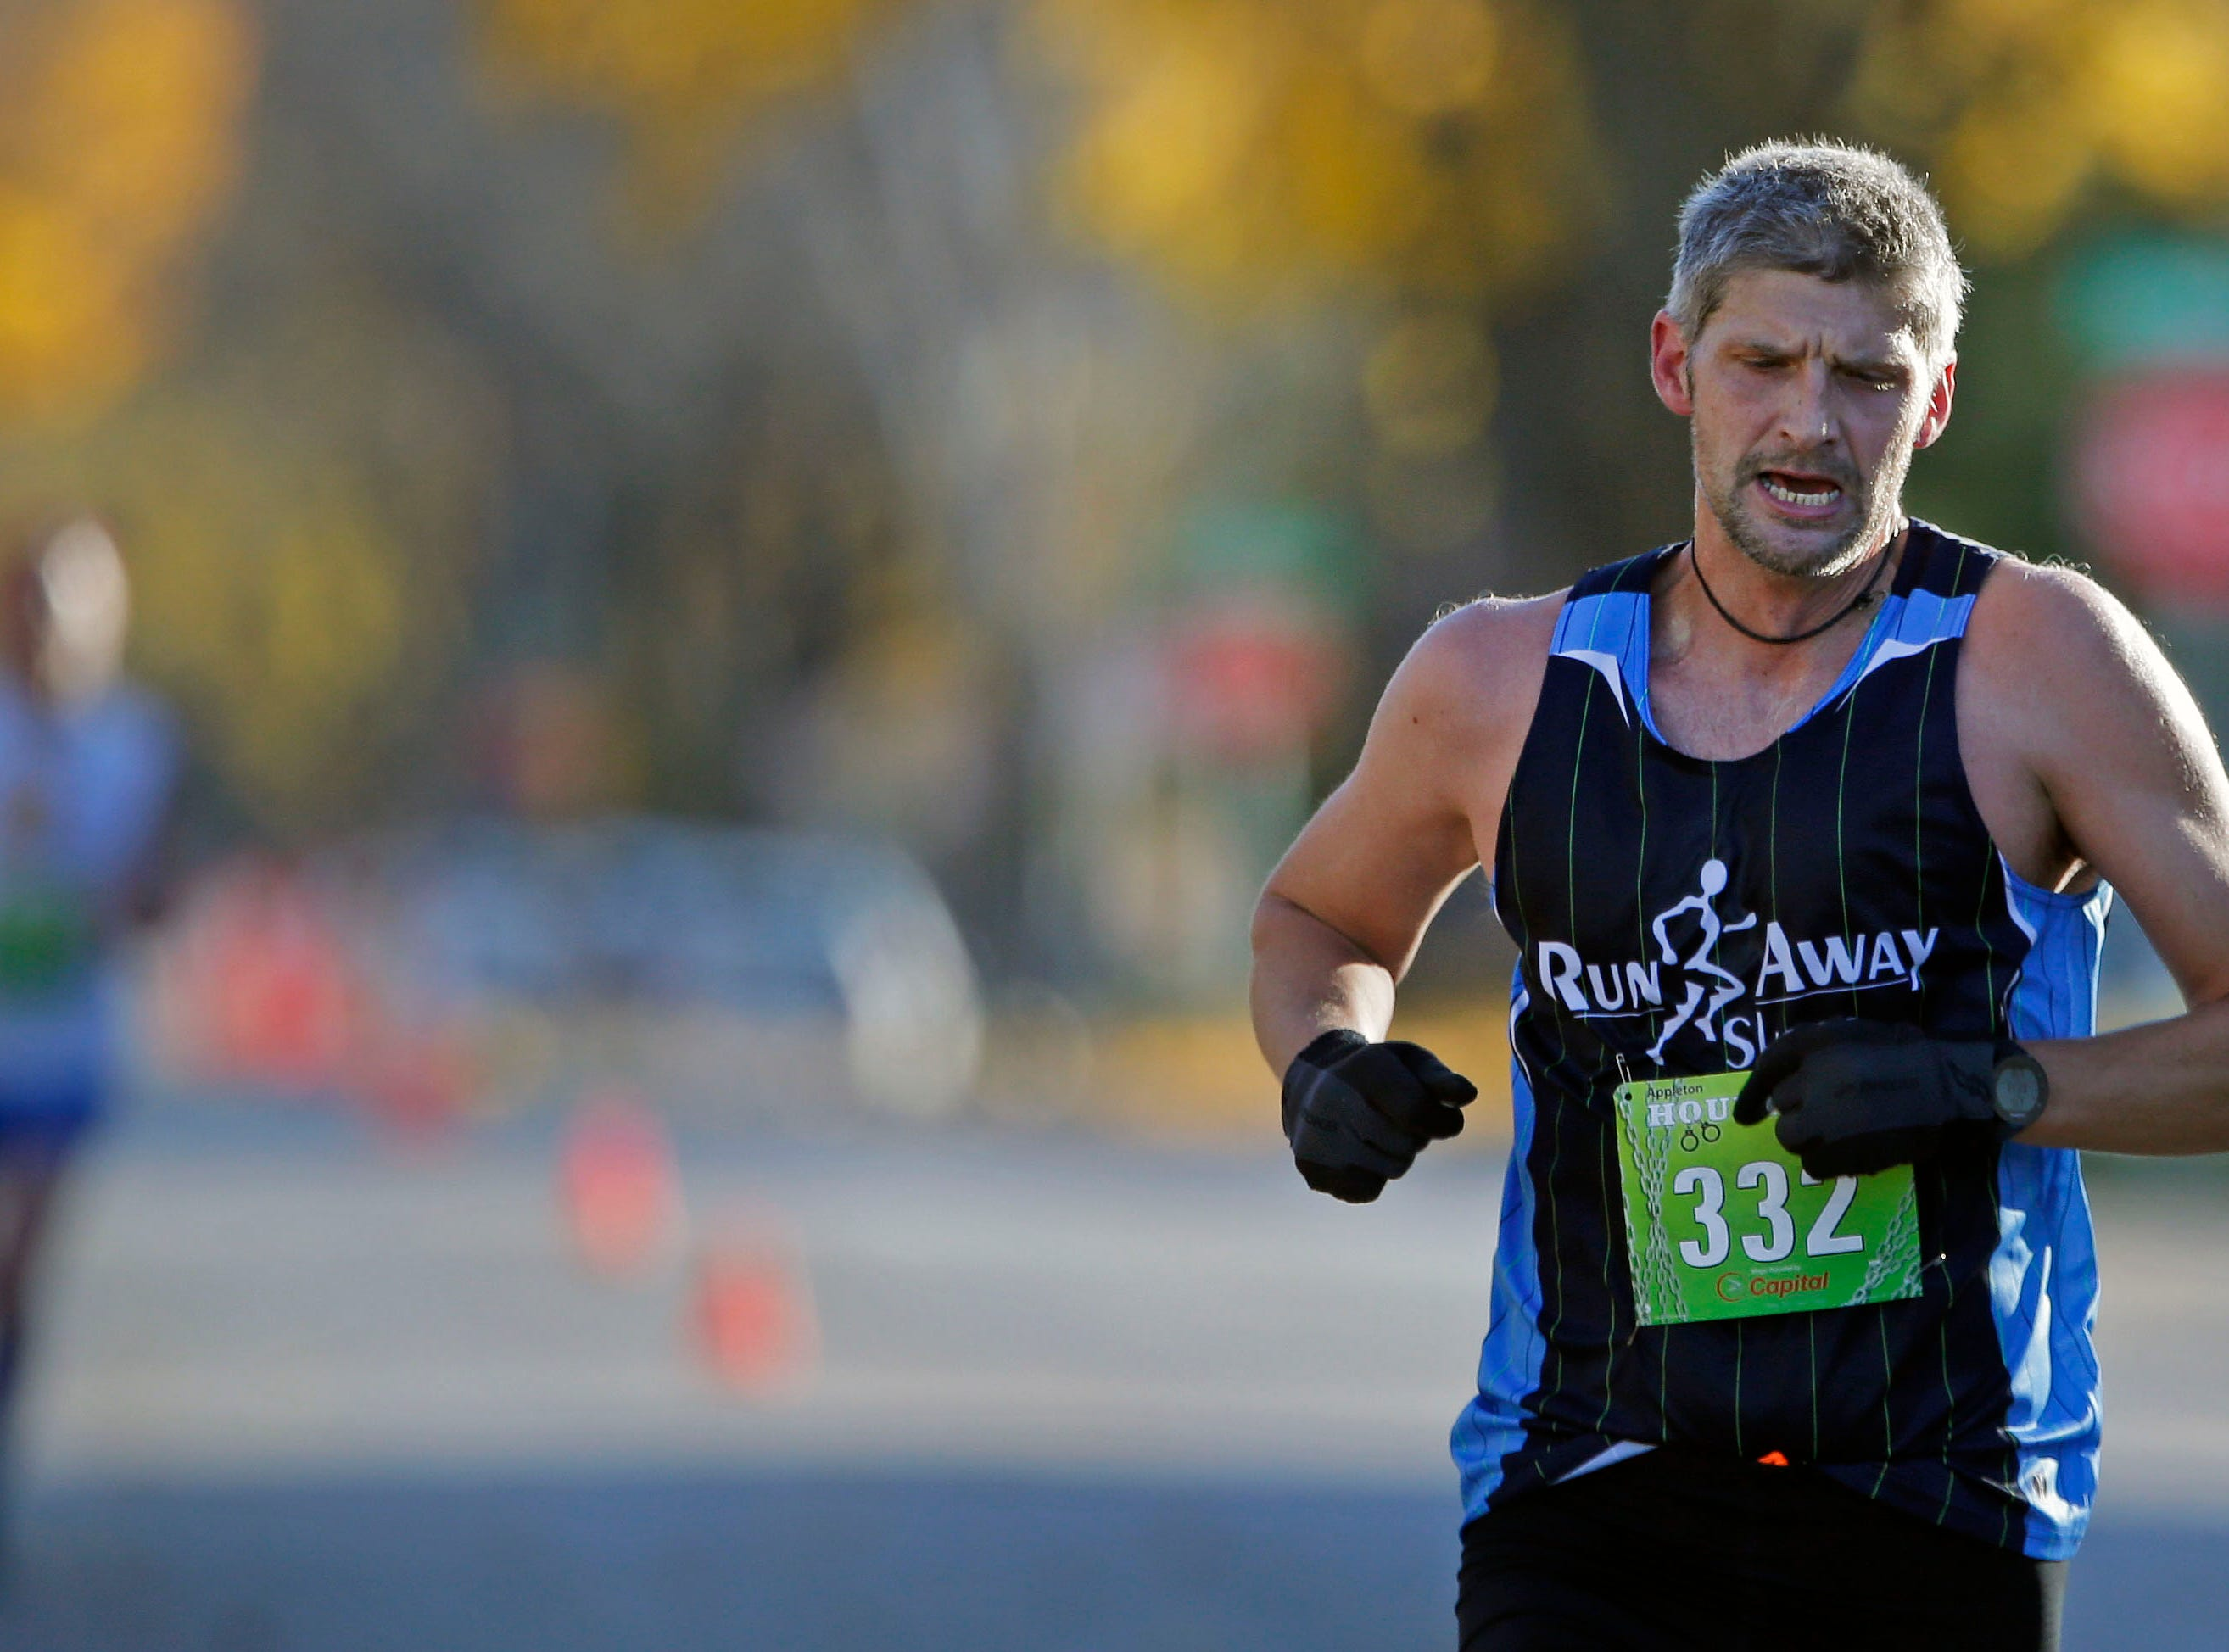 Michael Heidke nears the finish of the 4th annual Appleton Houdini 10K Saturday, November 3, 2018, in Appleton, Wis.Ron Page/USA TODAY NETWORK-Wisconsin